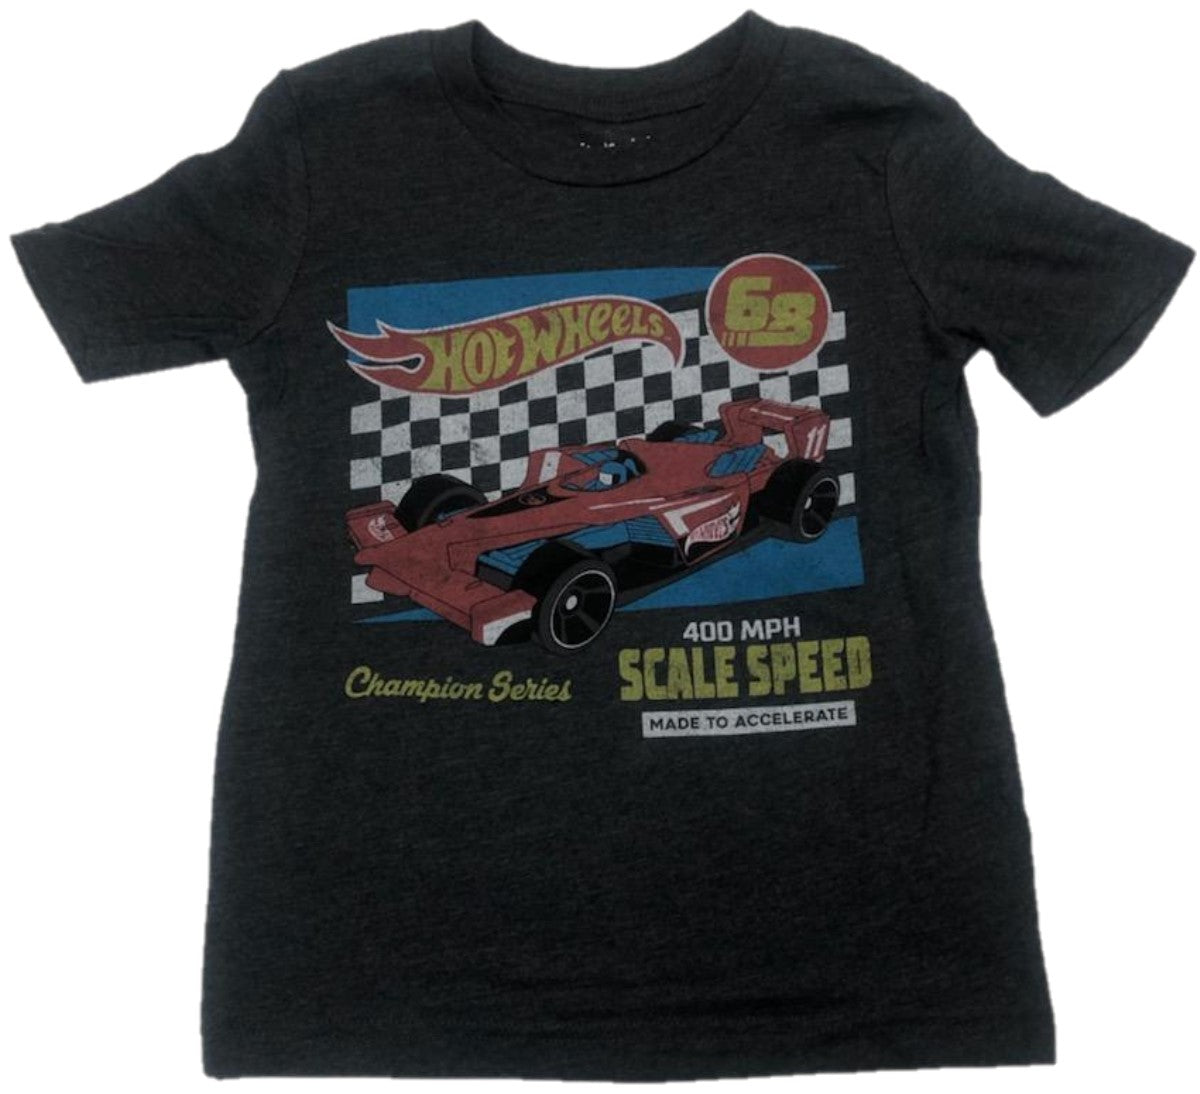 Hot Wheels 68 Champion Series Scale Speed Boys T-Shirt